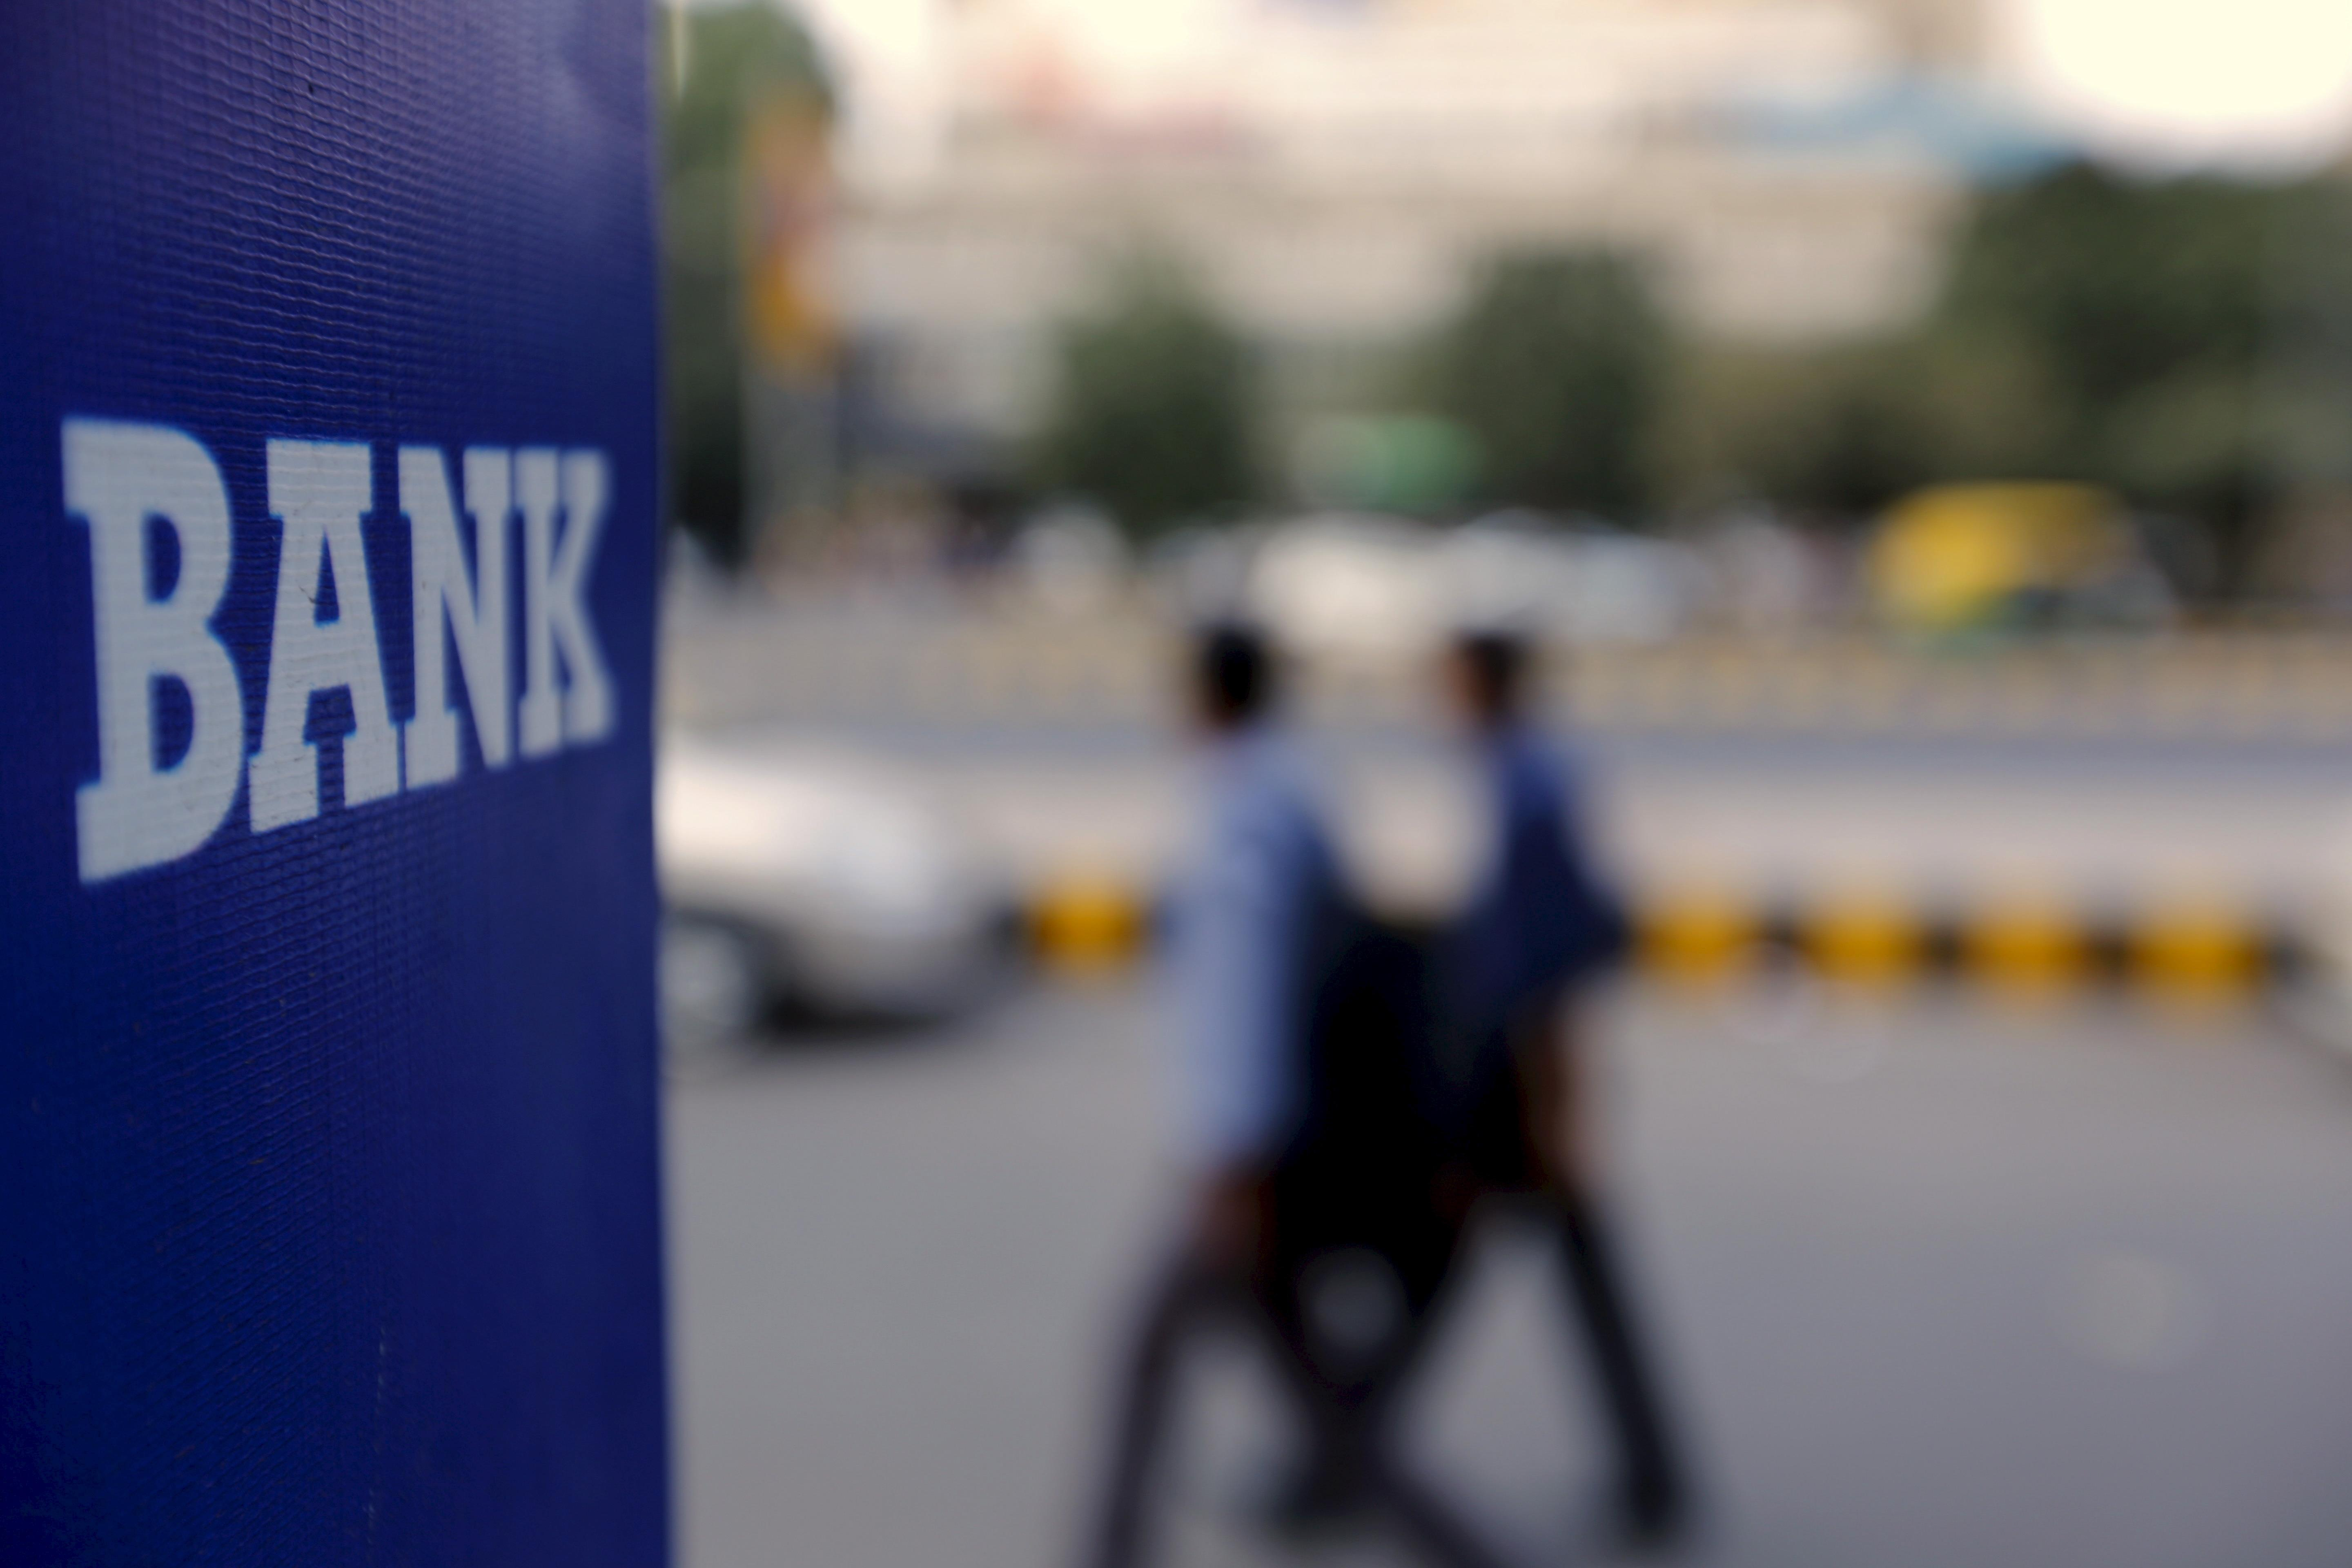 India government may direct state banks on debt resolution: finance ministry source